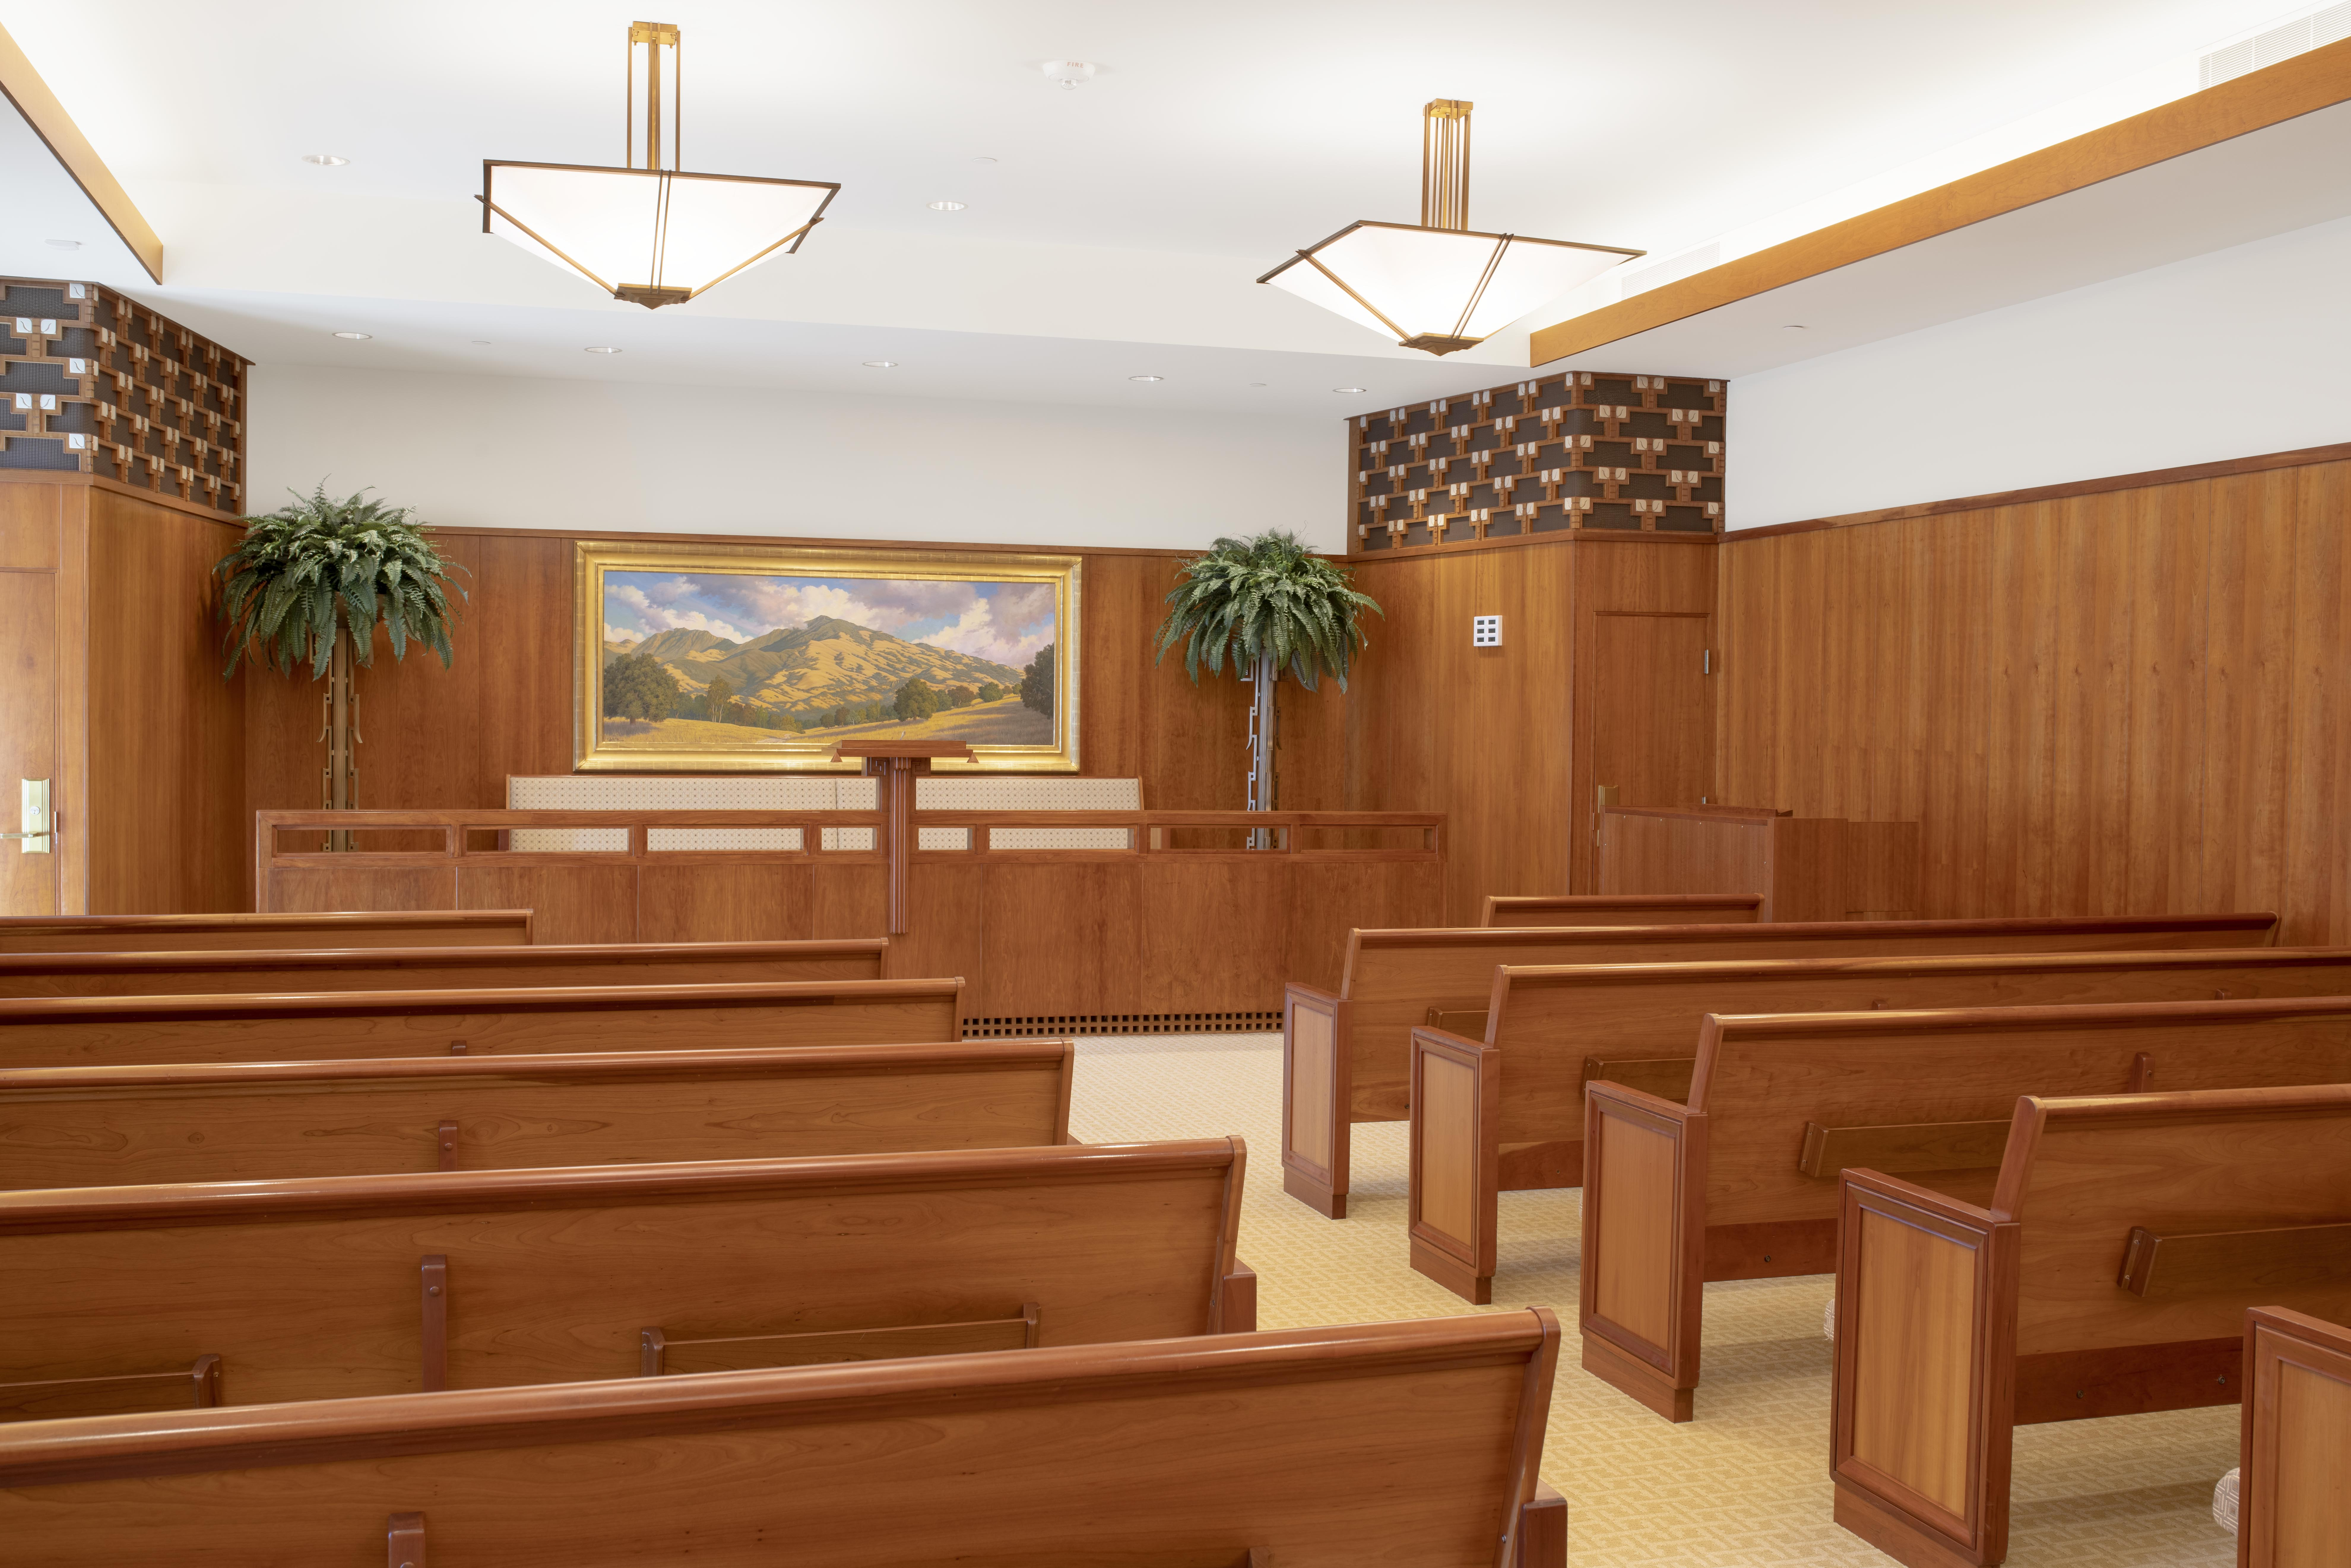 One of two chapels in the Oakland California Temple. This is the north chapel.